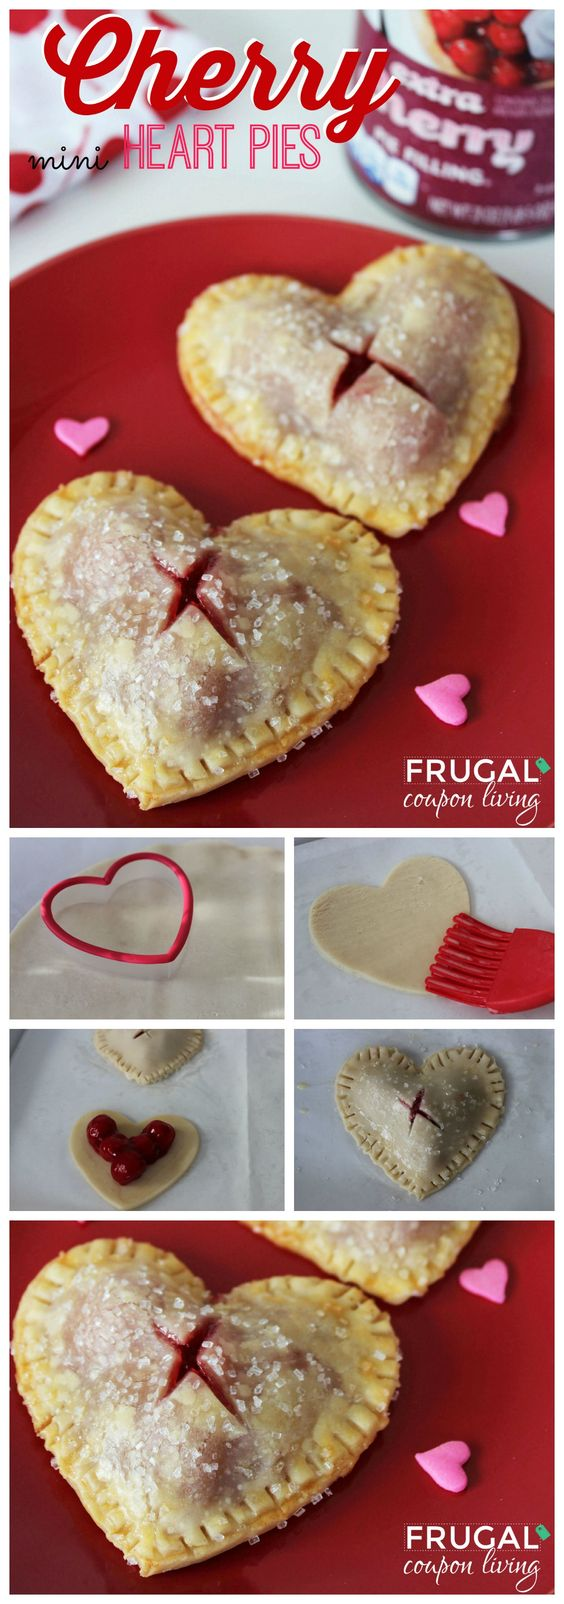 Valentines Dessert. Valentine's Day Mini Heart Cherry Pies on Frugal Coupon Living. Valentines Idea. Cherry Pie Recipe.: